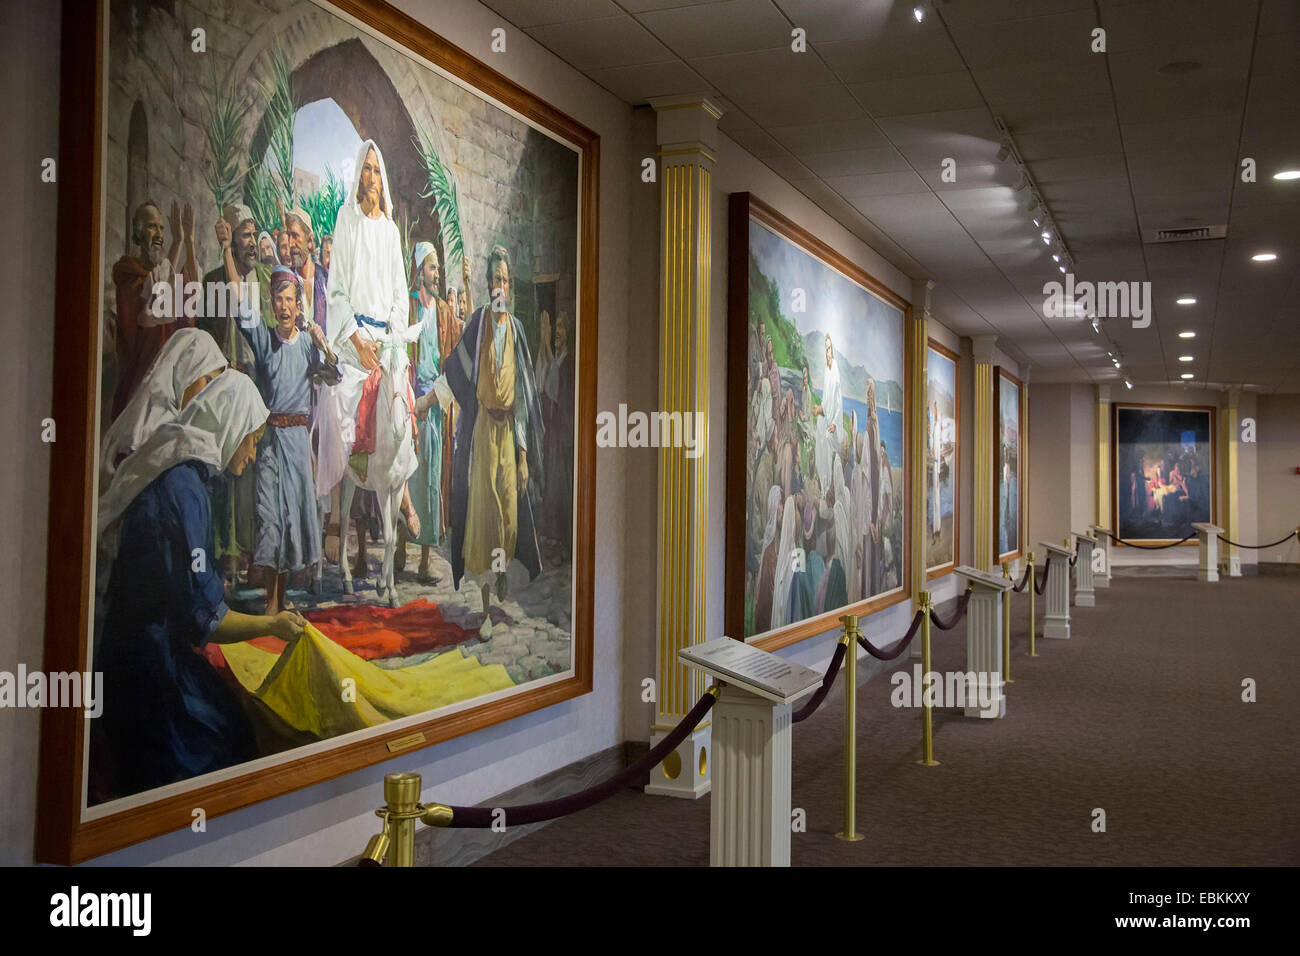 Salt Lake City, Utah - Paintings about the life of Jesus Christ on the walls of a Mormon visitor center in Temple - Stock Image